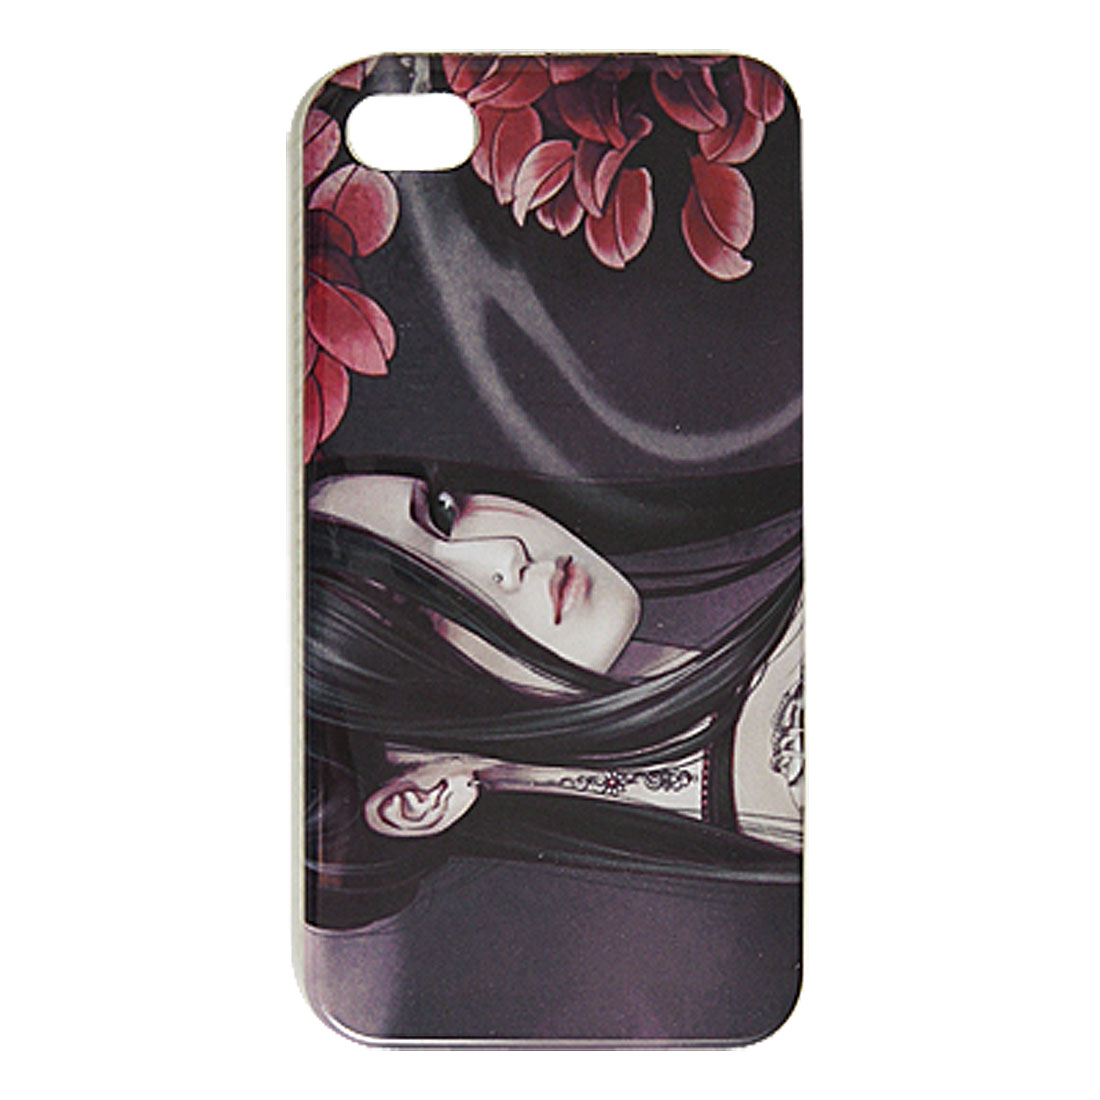 Chinese Cartoon Beauty Dark Purple Hard IMD Plastic Back Cover for iPhone 4 4G 4GS 4S